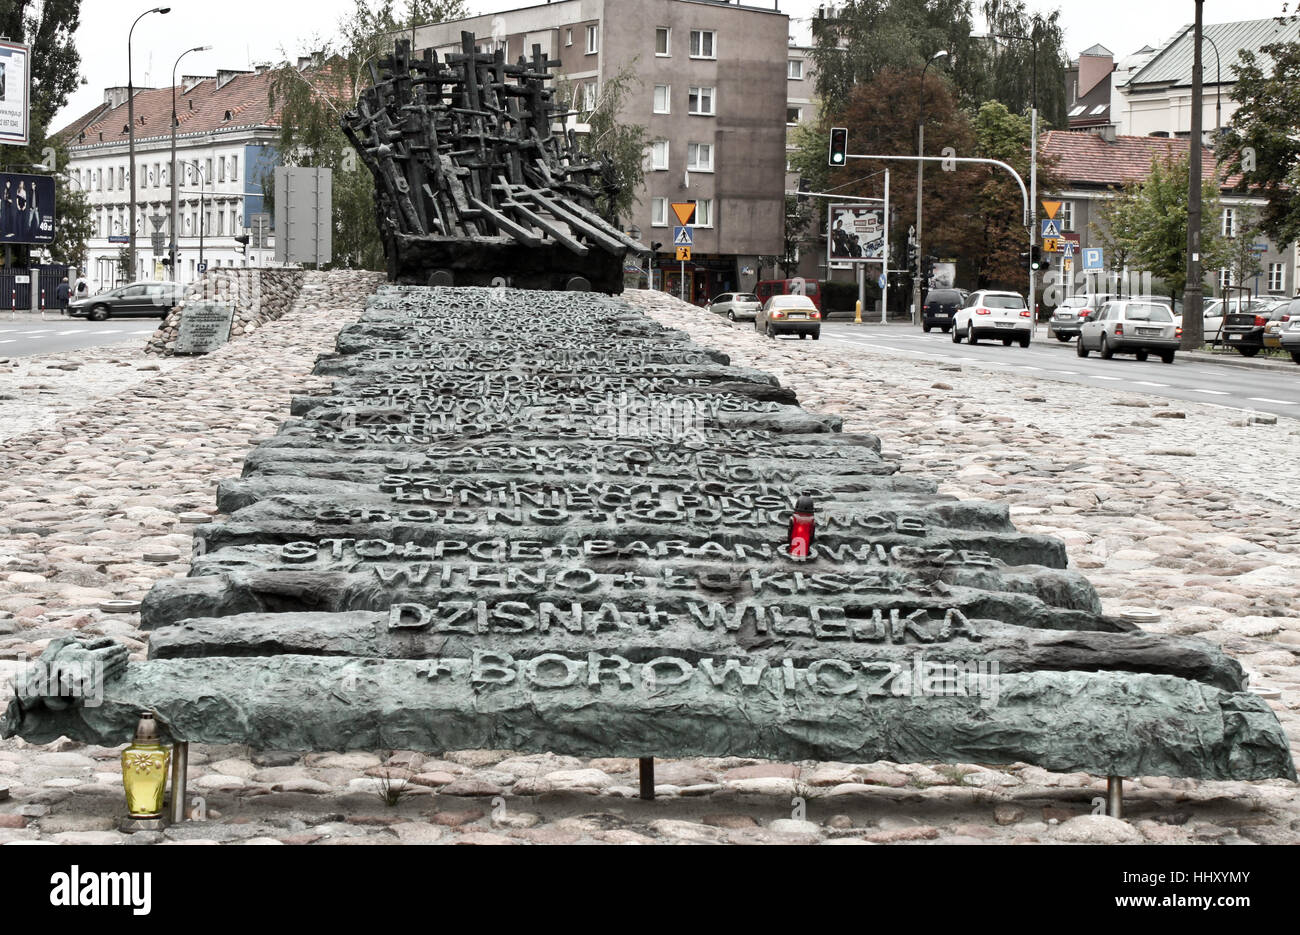 WARSAW, POLAND - SEPTEMBER 1, 2012: Memorial to the victims of  the Soviets - Monument for the Fallen and Murdered Stock Photo